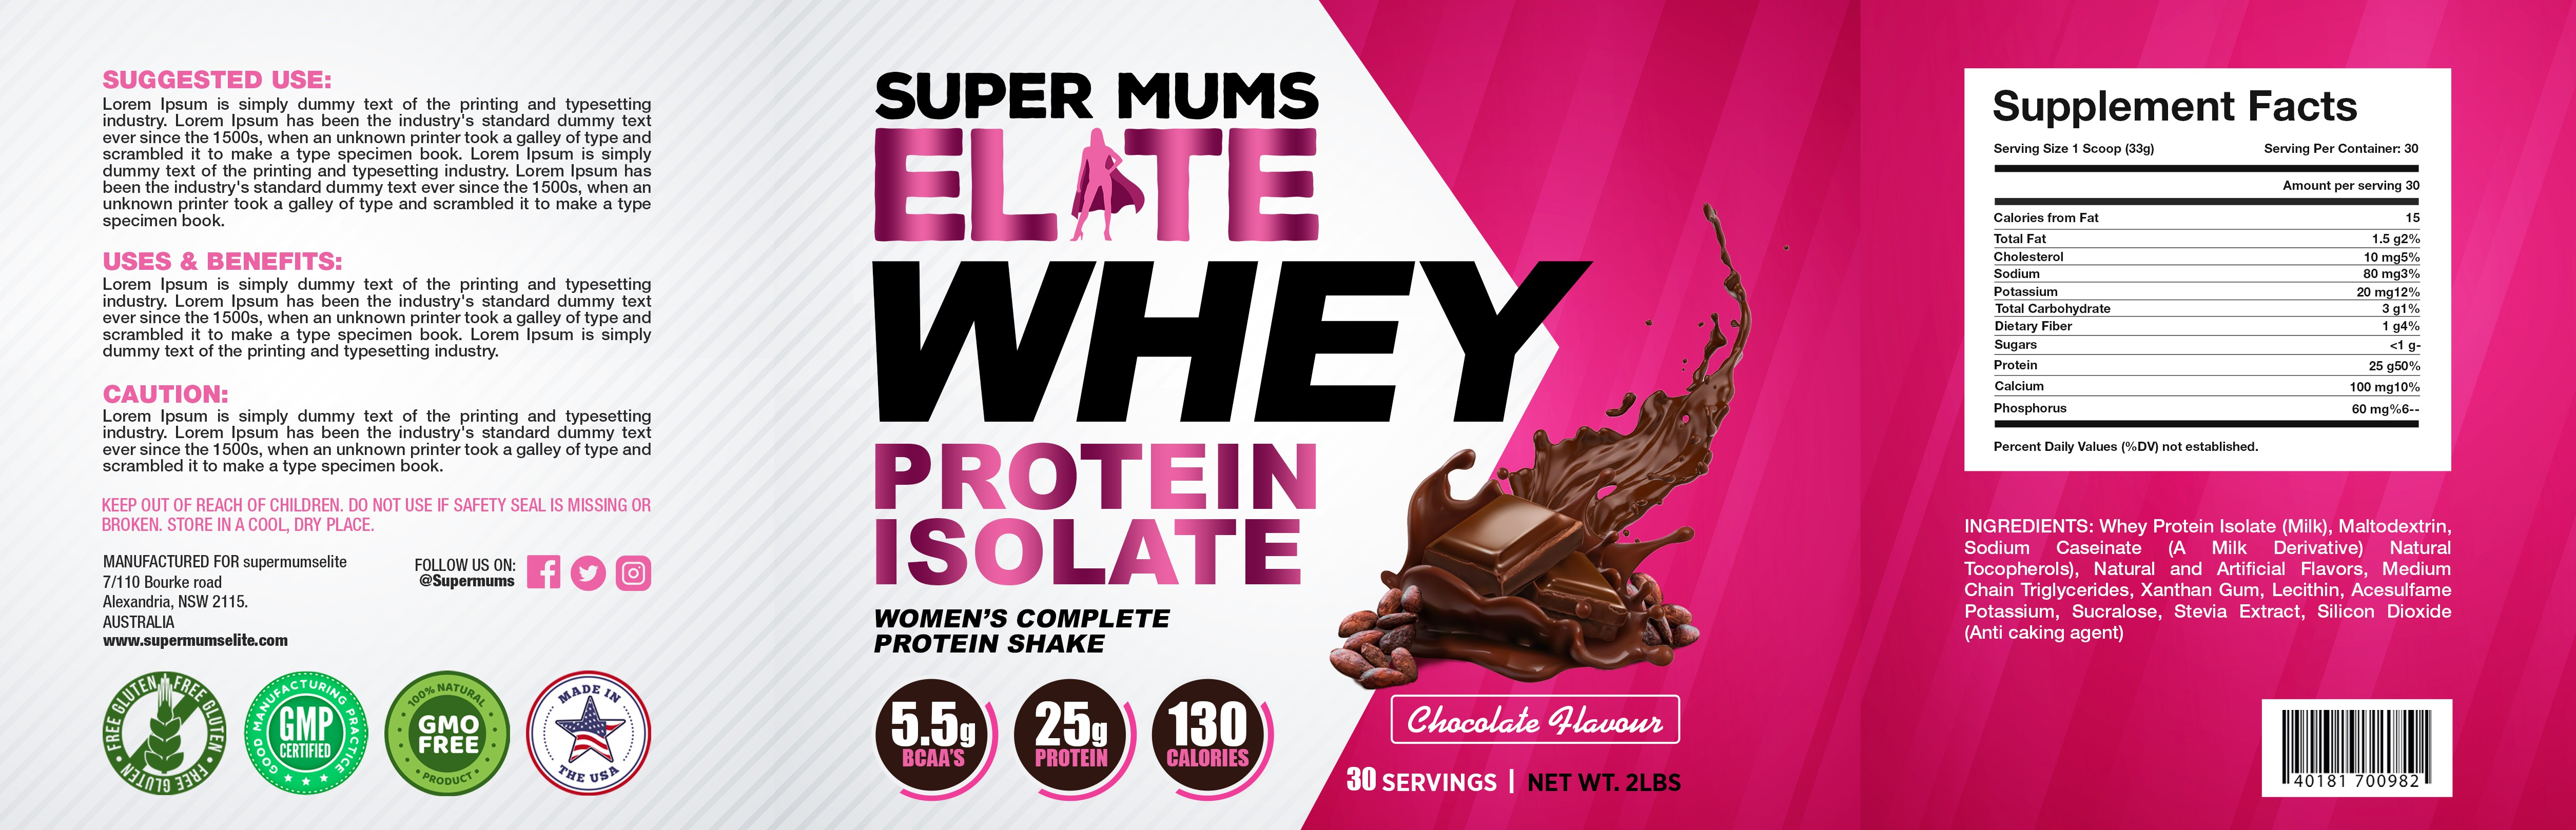 I am an online fitness coach for MOTHERS who are lacking self love - wanting a whey protein isolate tub label design!